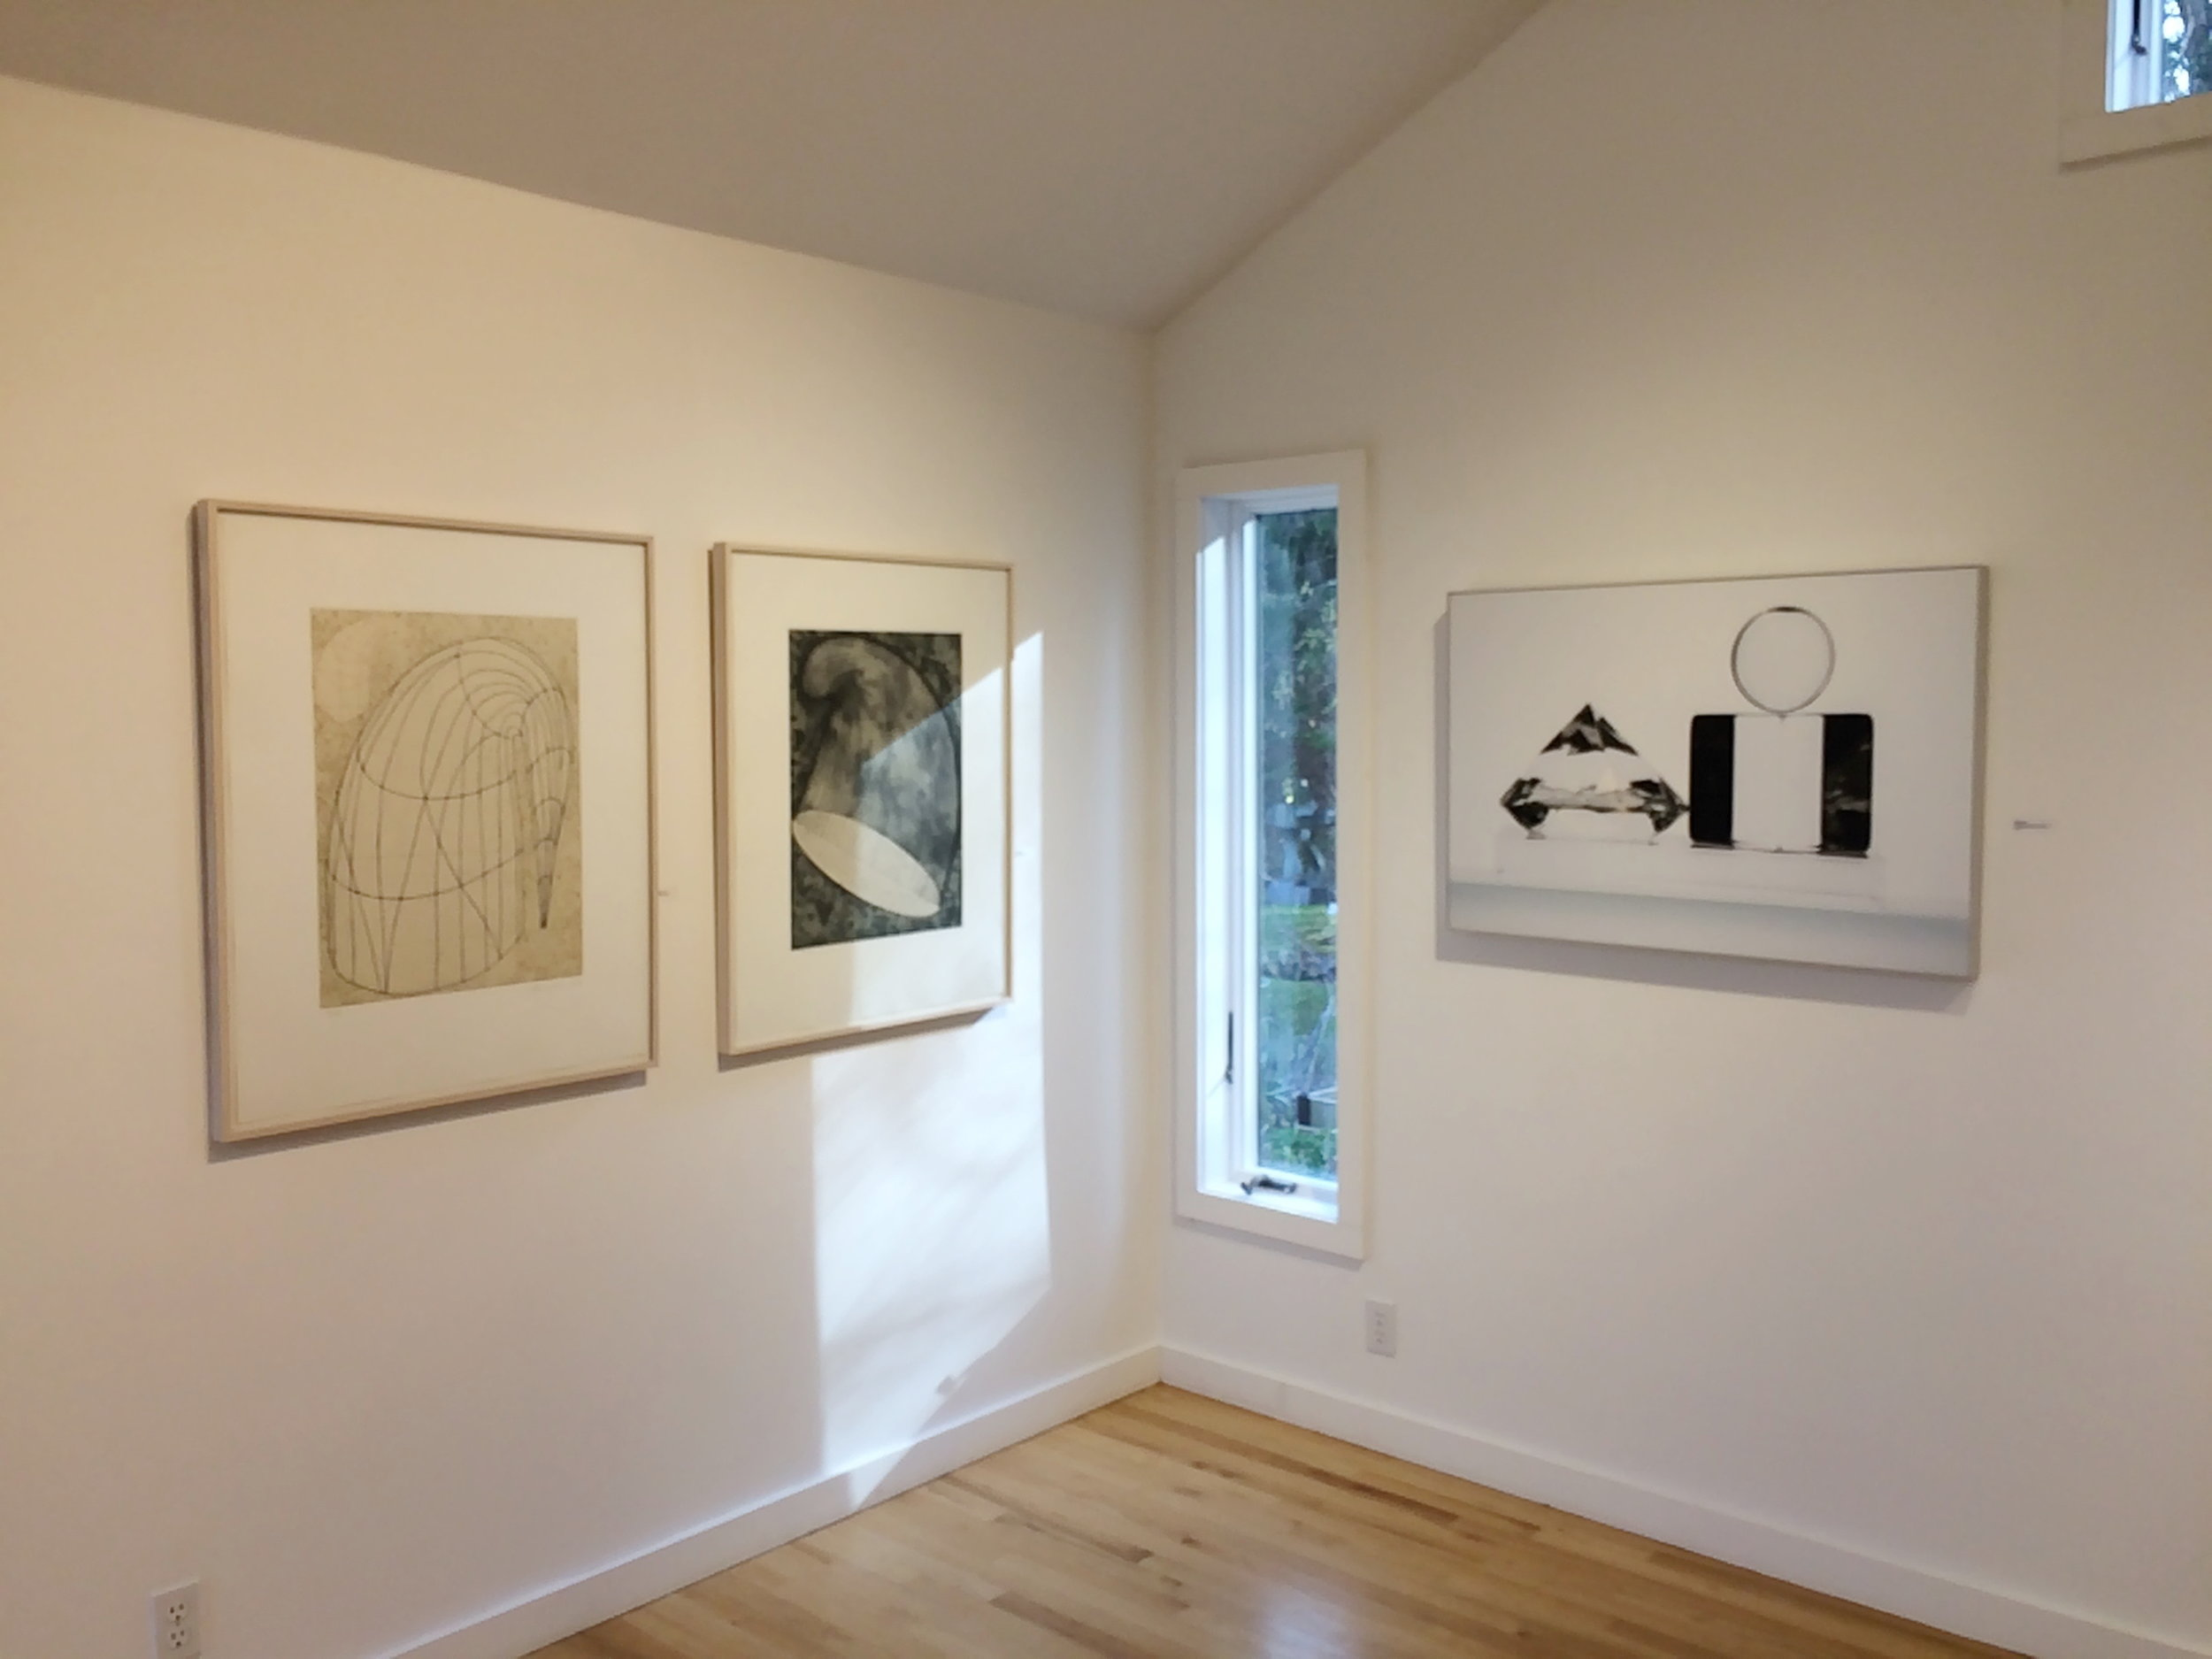 Elena Zang Gallery 2015 ( Martin Puryear works on left wall)